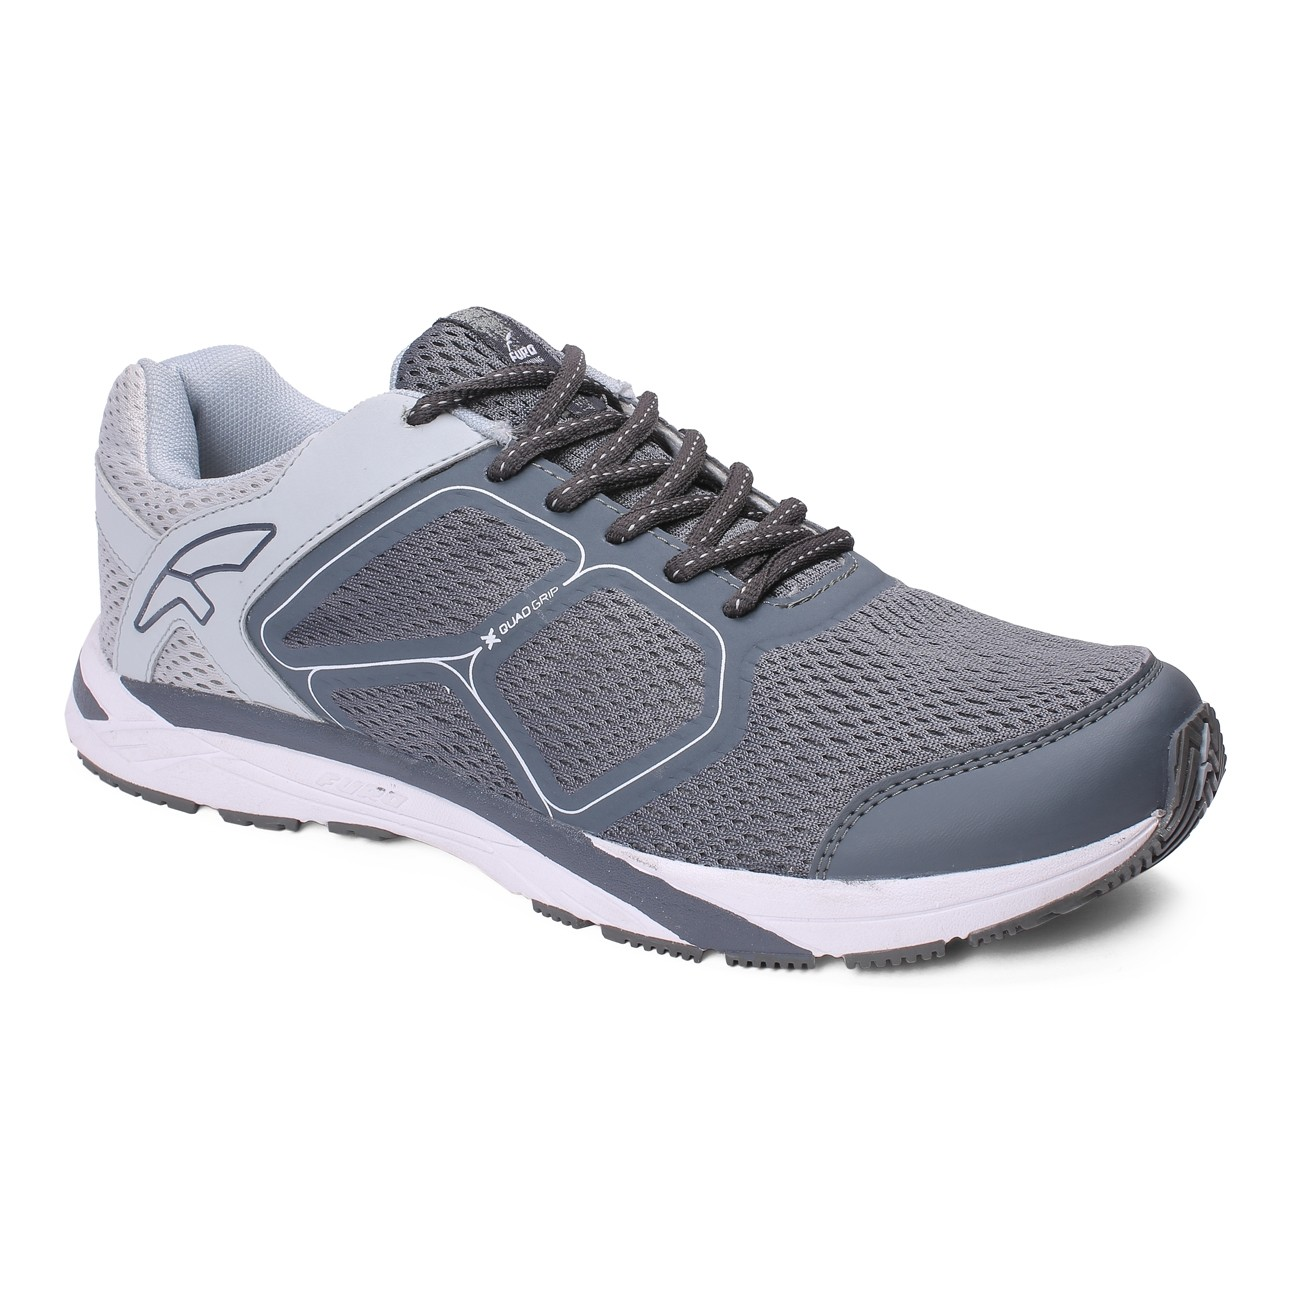 FURO R1006 | Running Shoes for Men